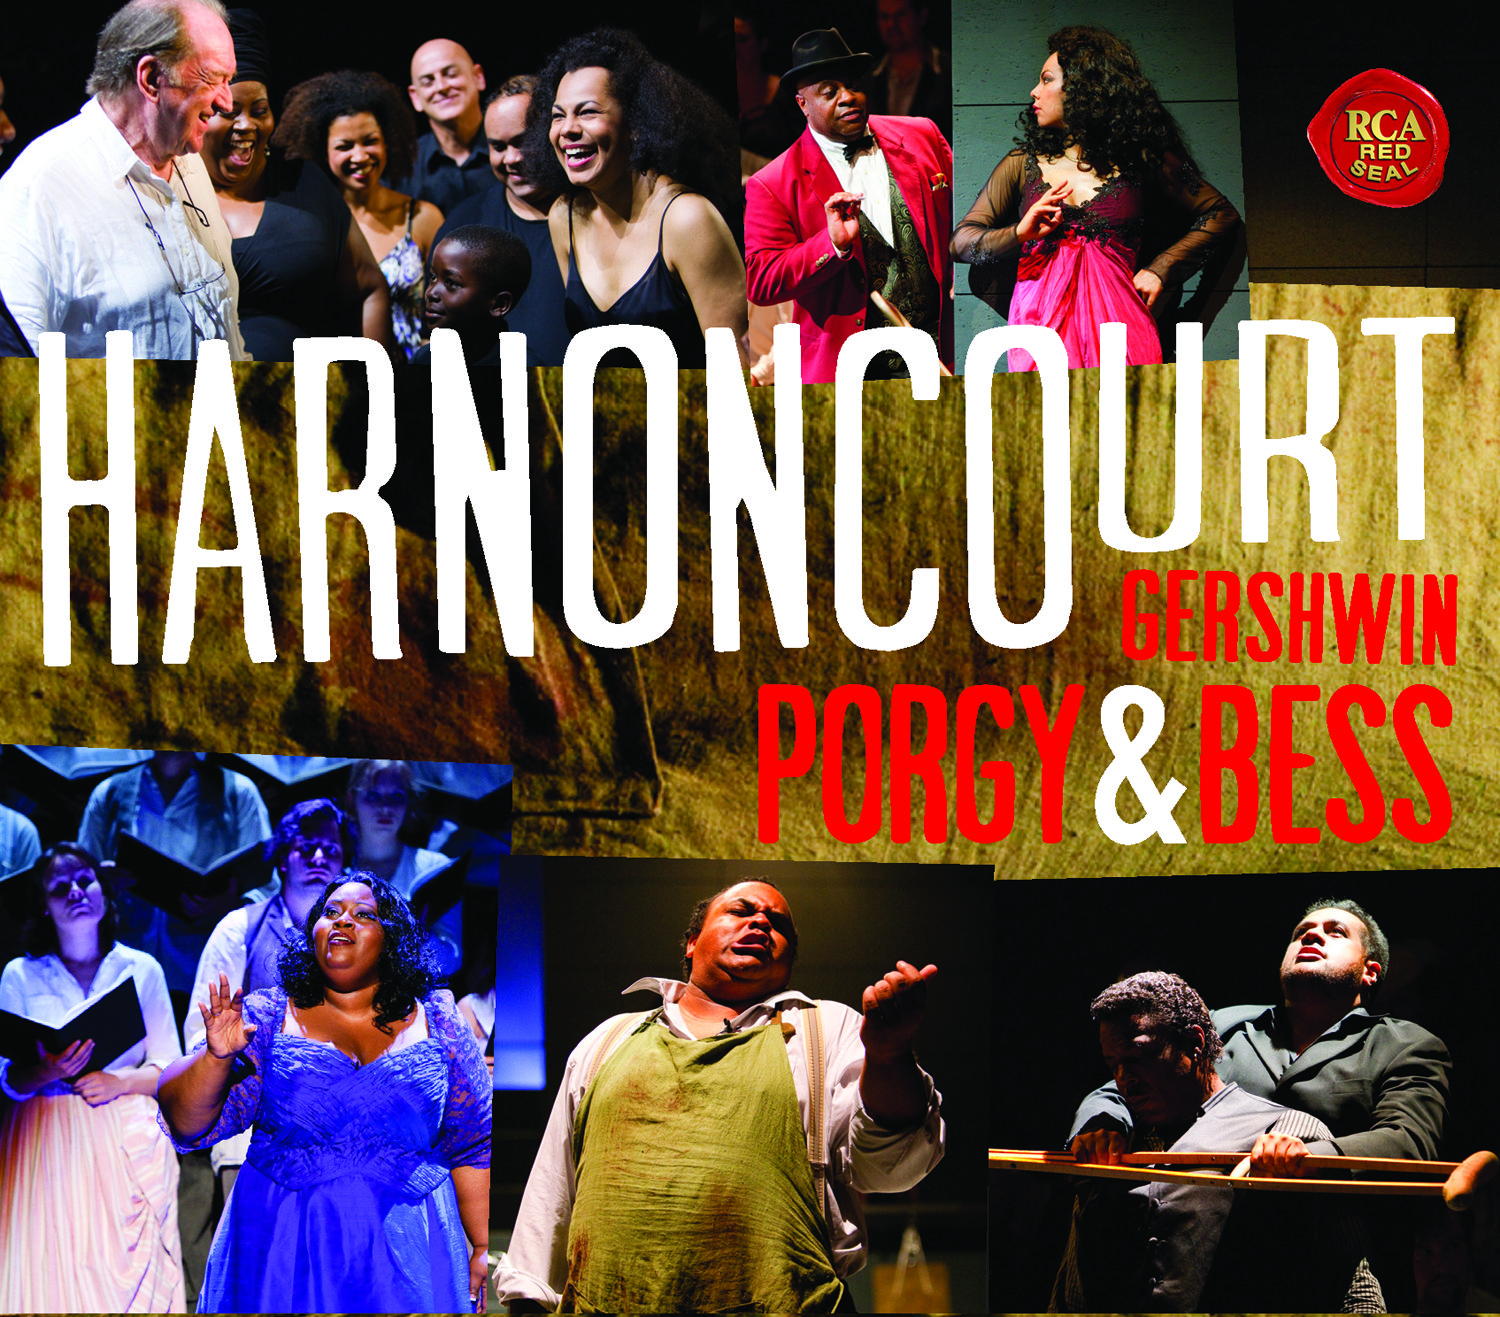 Porgy and Bess – Harnoncourt 2009